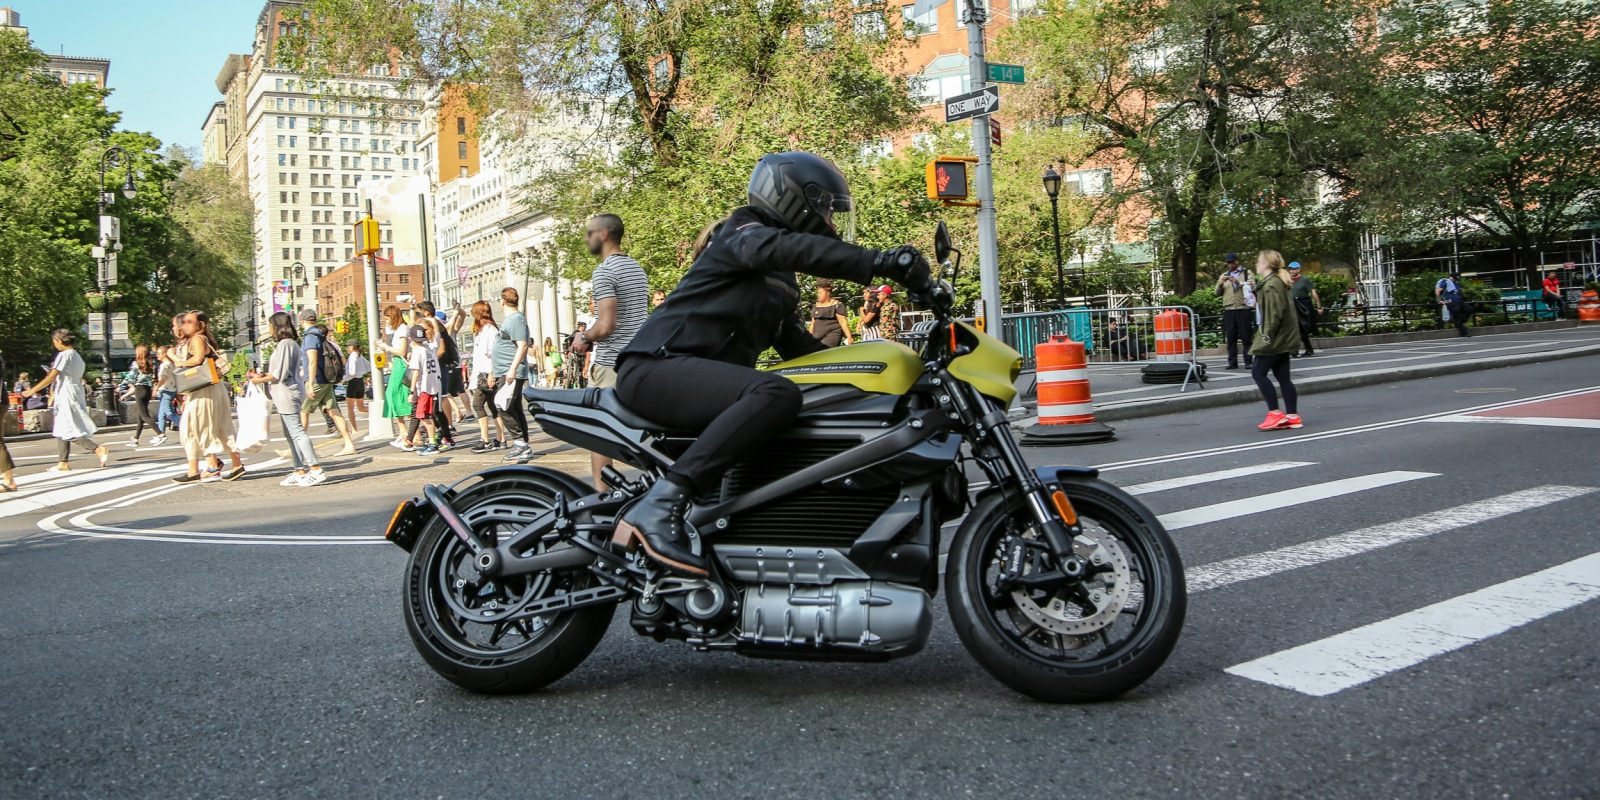 Full specs revealed on the 78 kW Harley-Davidson LiveWire electric